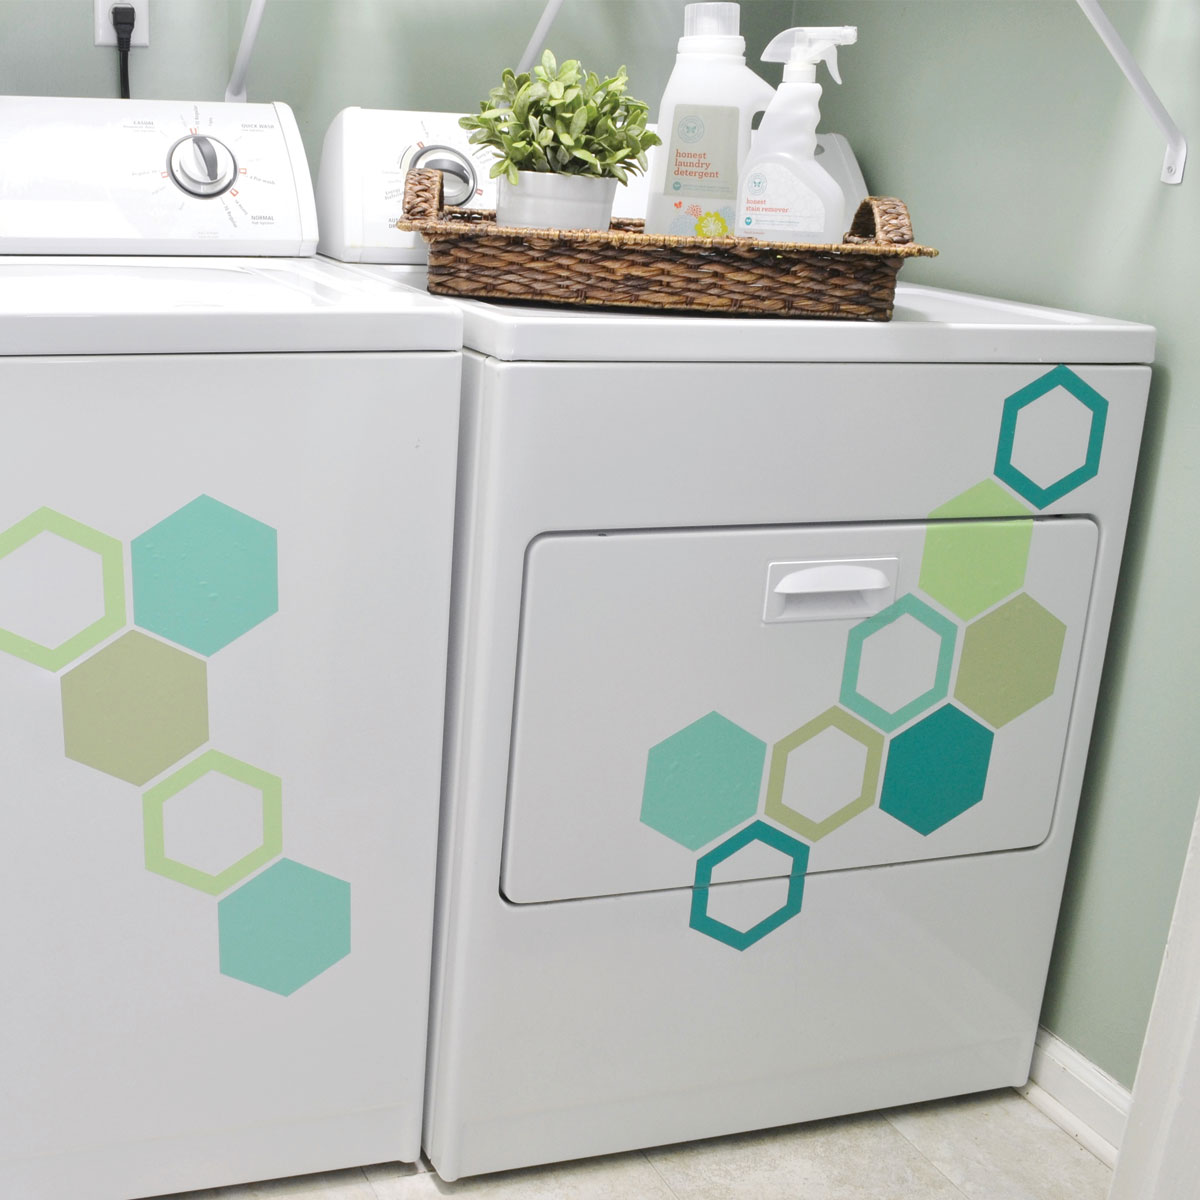 Hexagons wall quotes wall art decal kit wallquotes see it with your wall color amipublicfo Choice Image